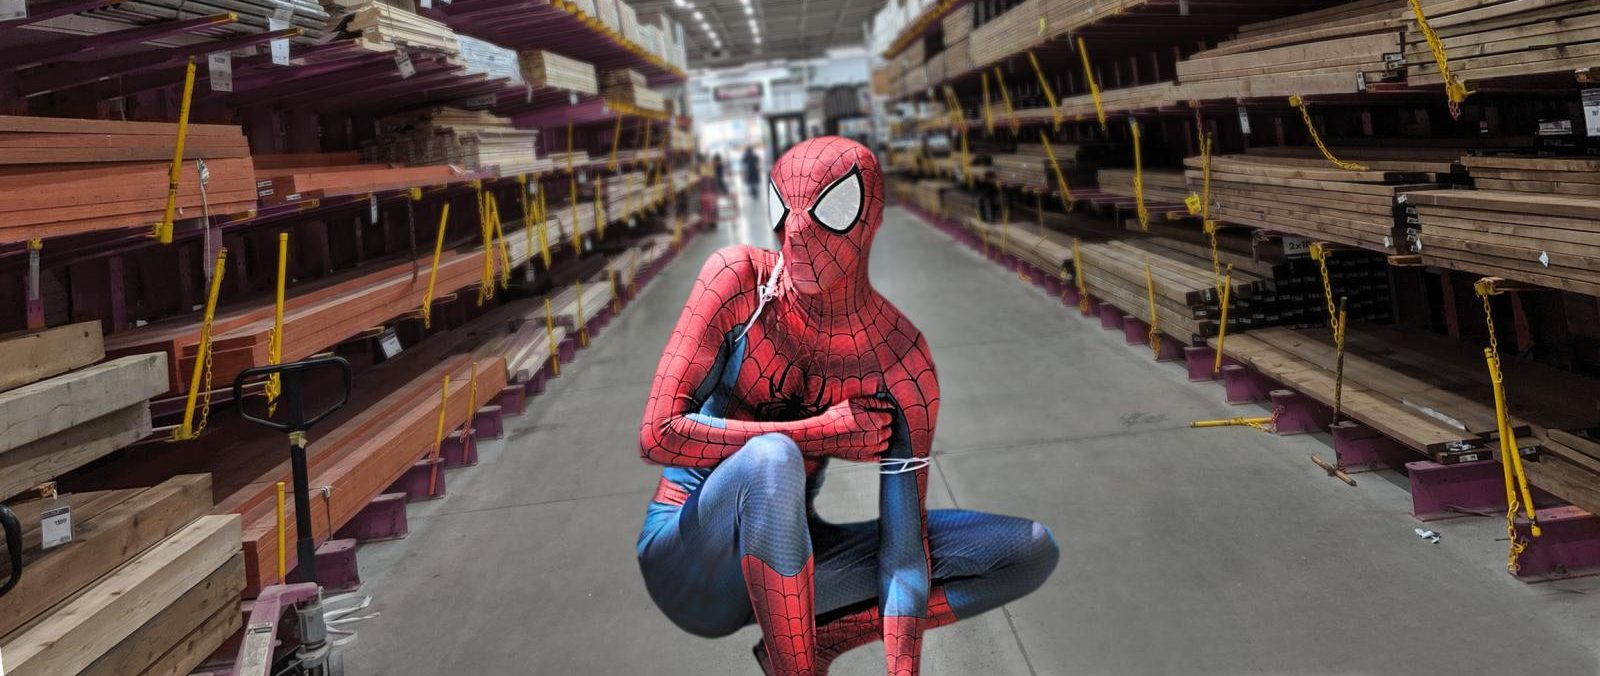 Man in a superhero costume crouching in an aisle of a home renovation warehouse.